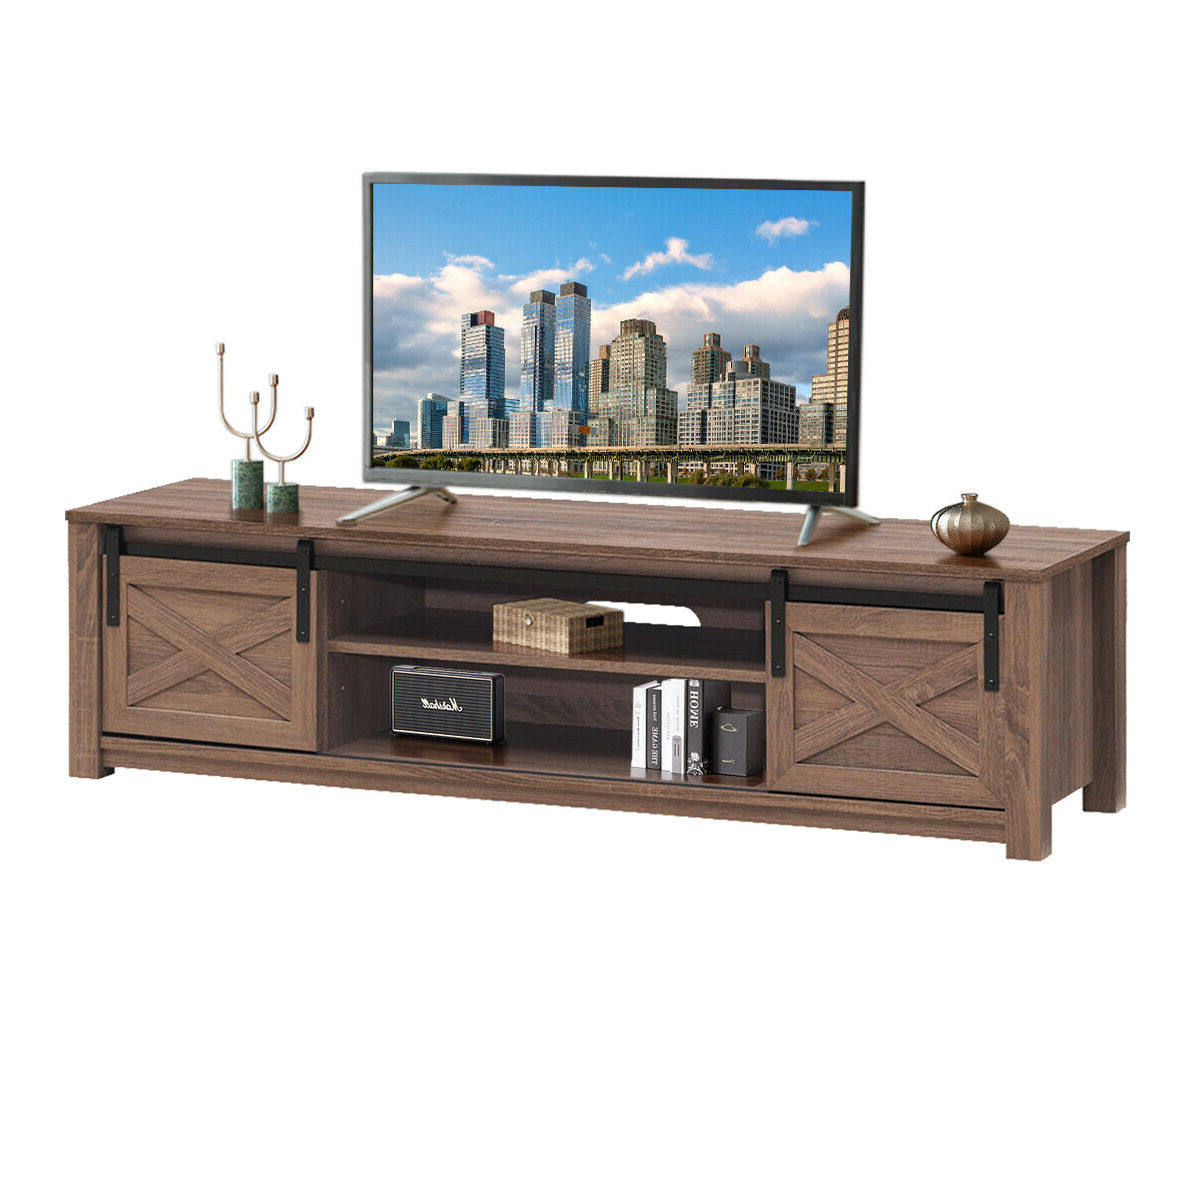 """Gymax Sliding Barn Door Tv Stand For Tv's Up To 65 Pertaining To Most Recent Caleah Tv Stands For Tvs Up To 65"""" (View 12 of 25)"""